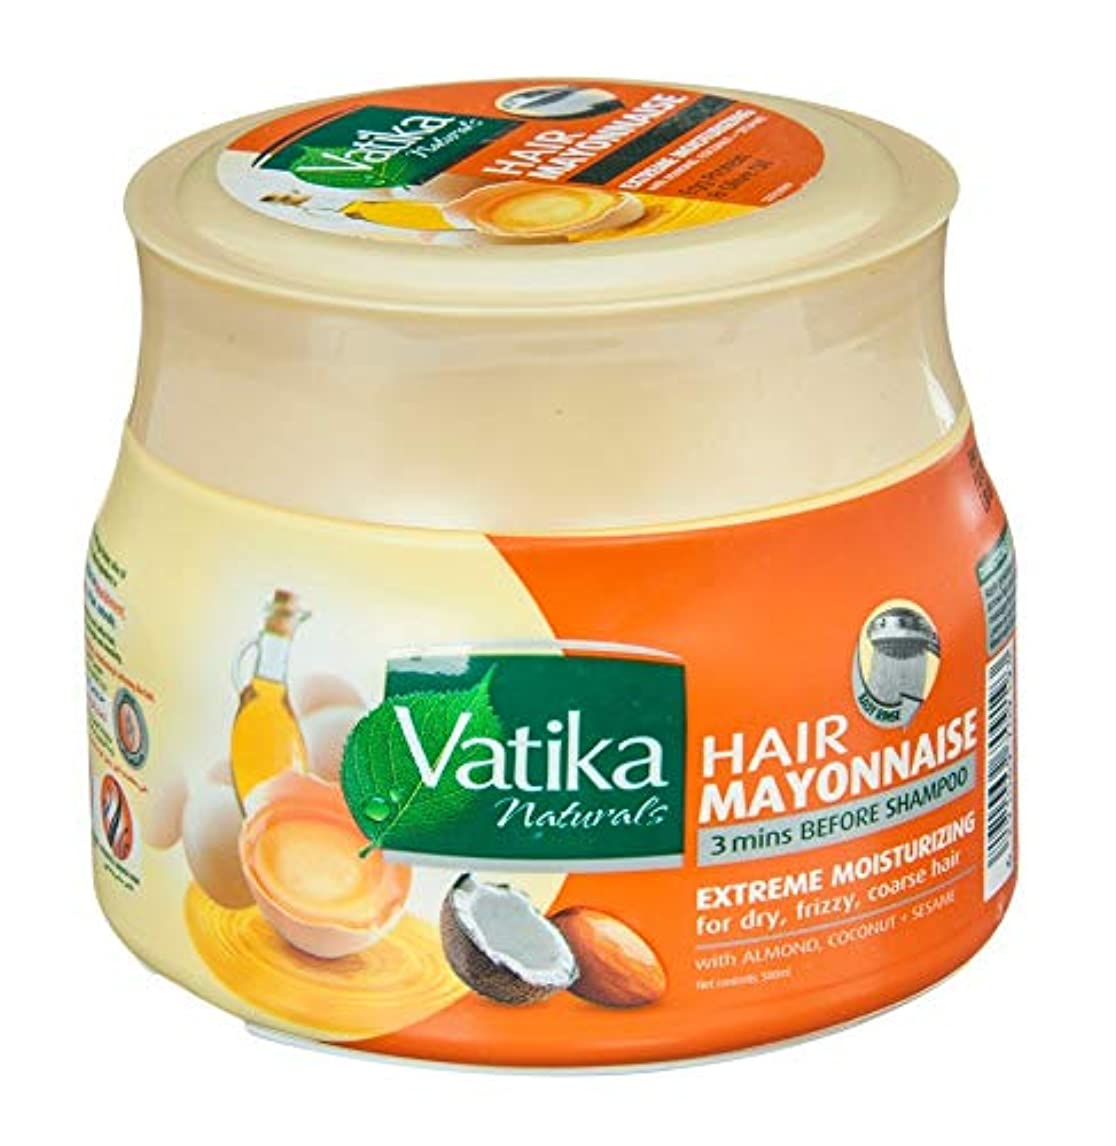 有彩色の彼女自身傾いたNatural Vatika Hair Mayonnaise Moisturizing 3 mins Before Shampoo 500 ml (Extreme Moisturizing (Almond, Coconut, Sesame))